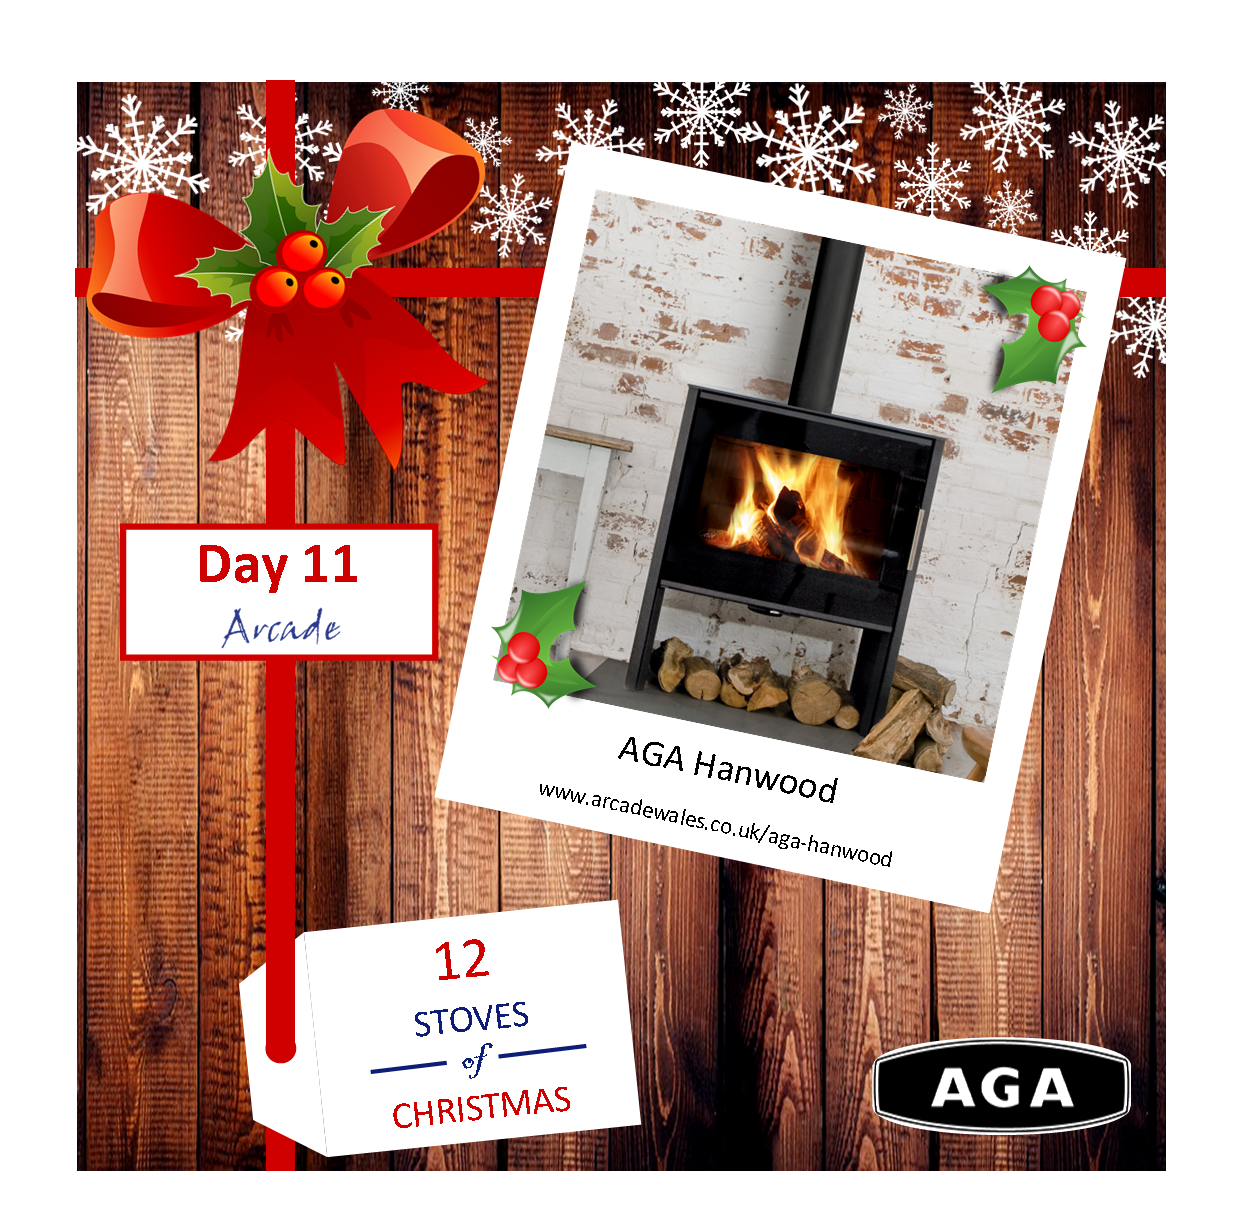 Day 11 - 12 Stoves of Christmas